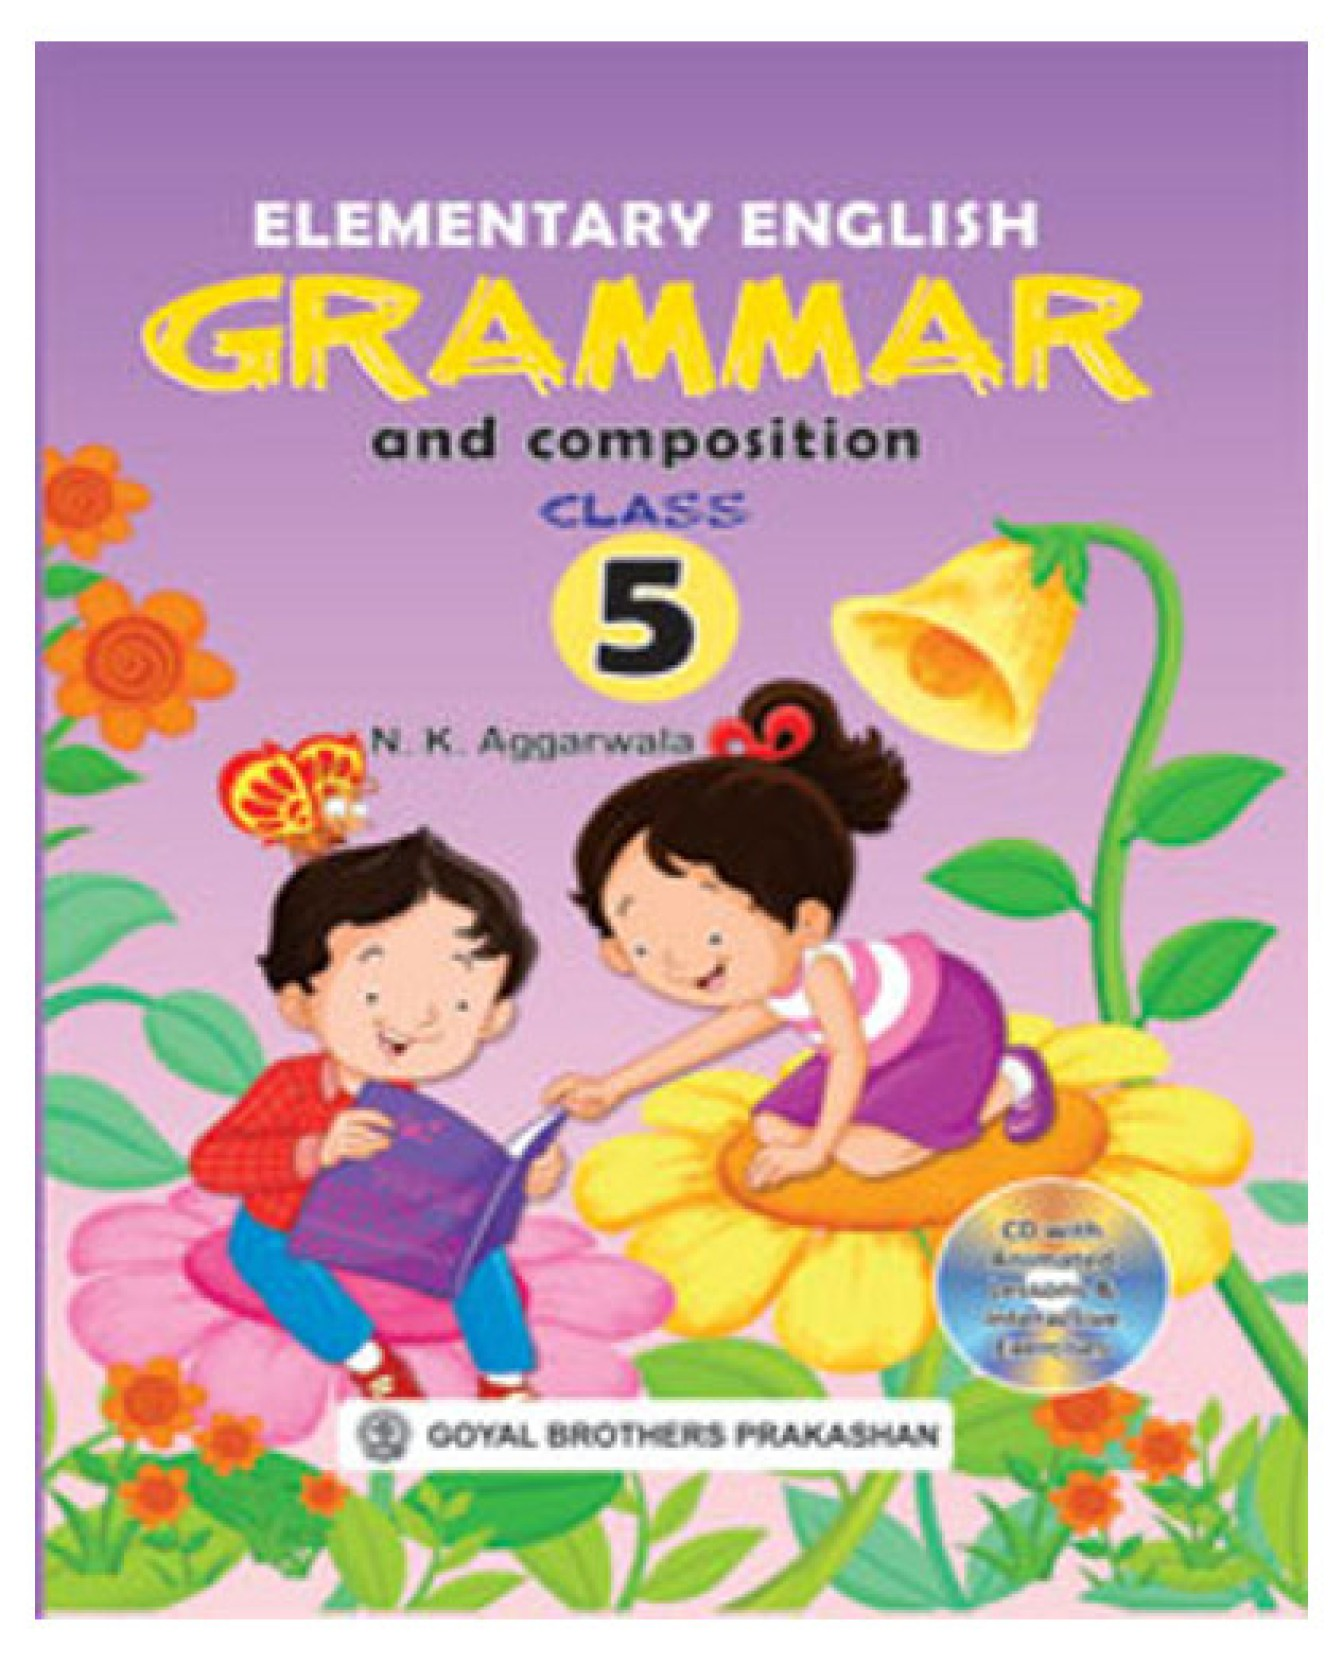 Elementary English Grammar and Composition Class 5 (With CD). Share